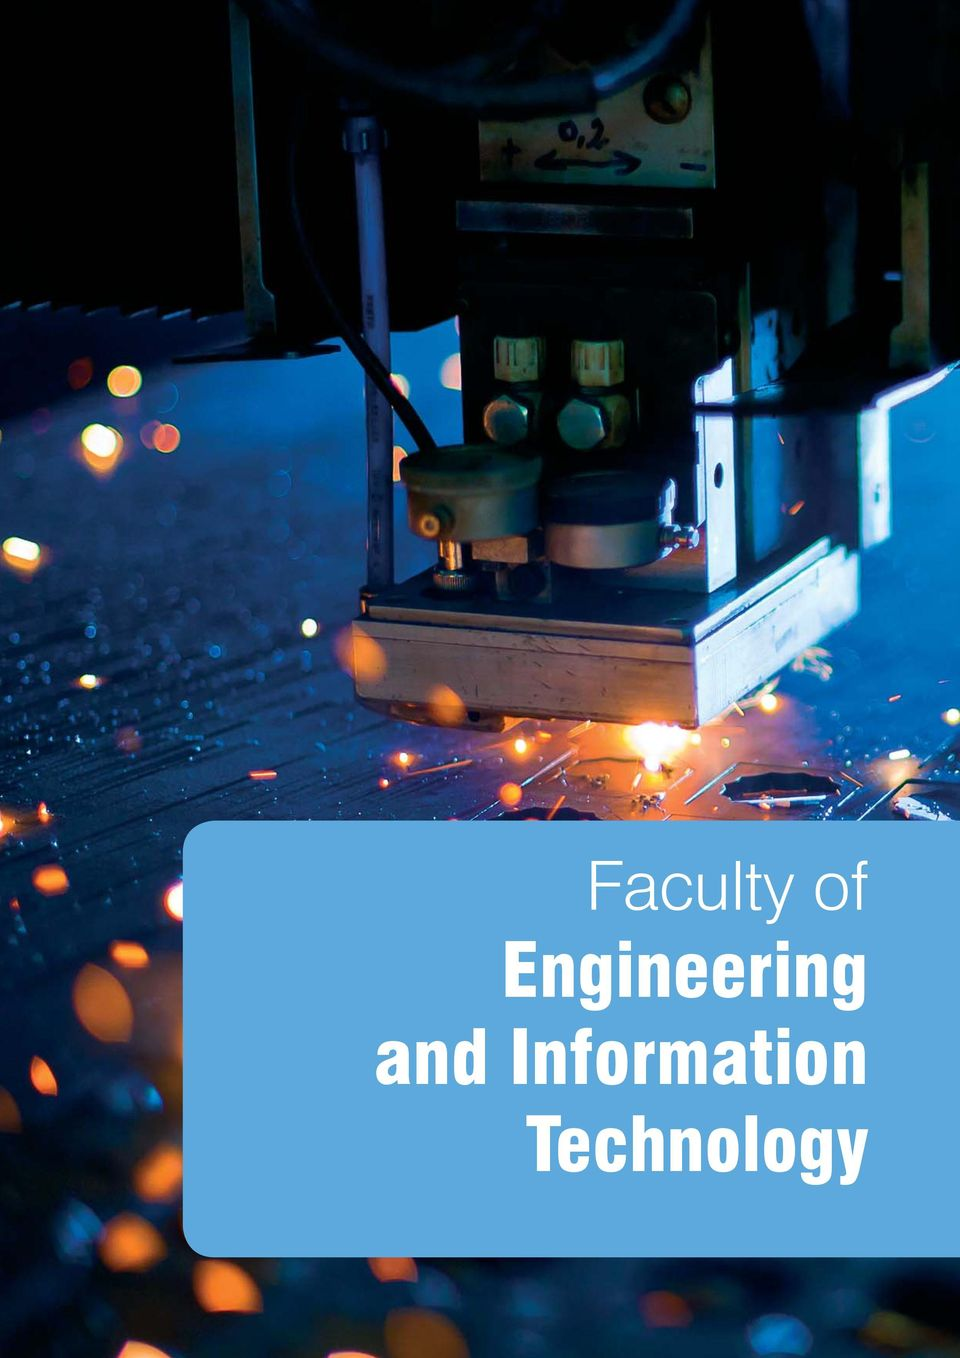 Engineering and Information Technology